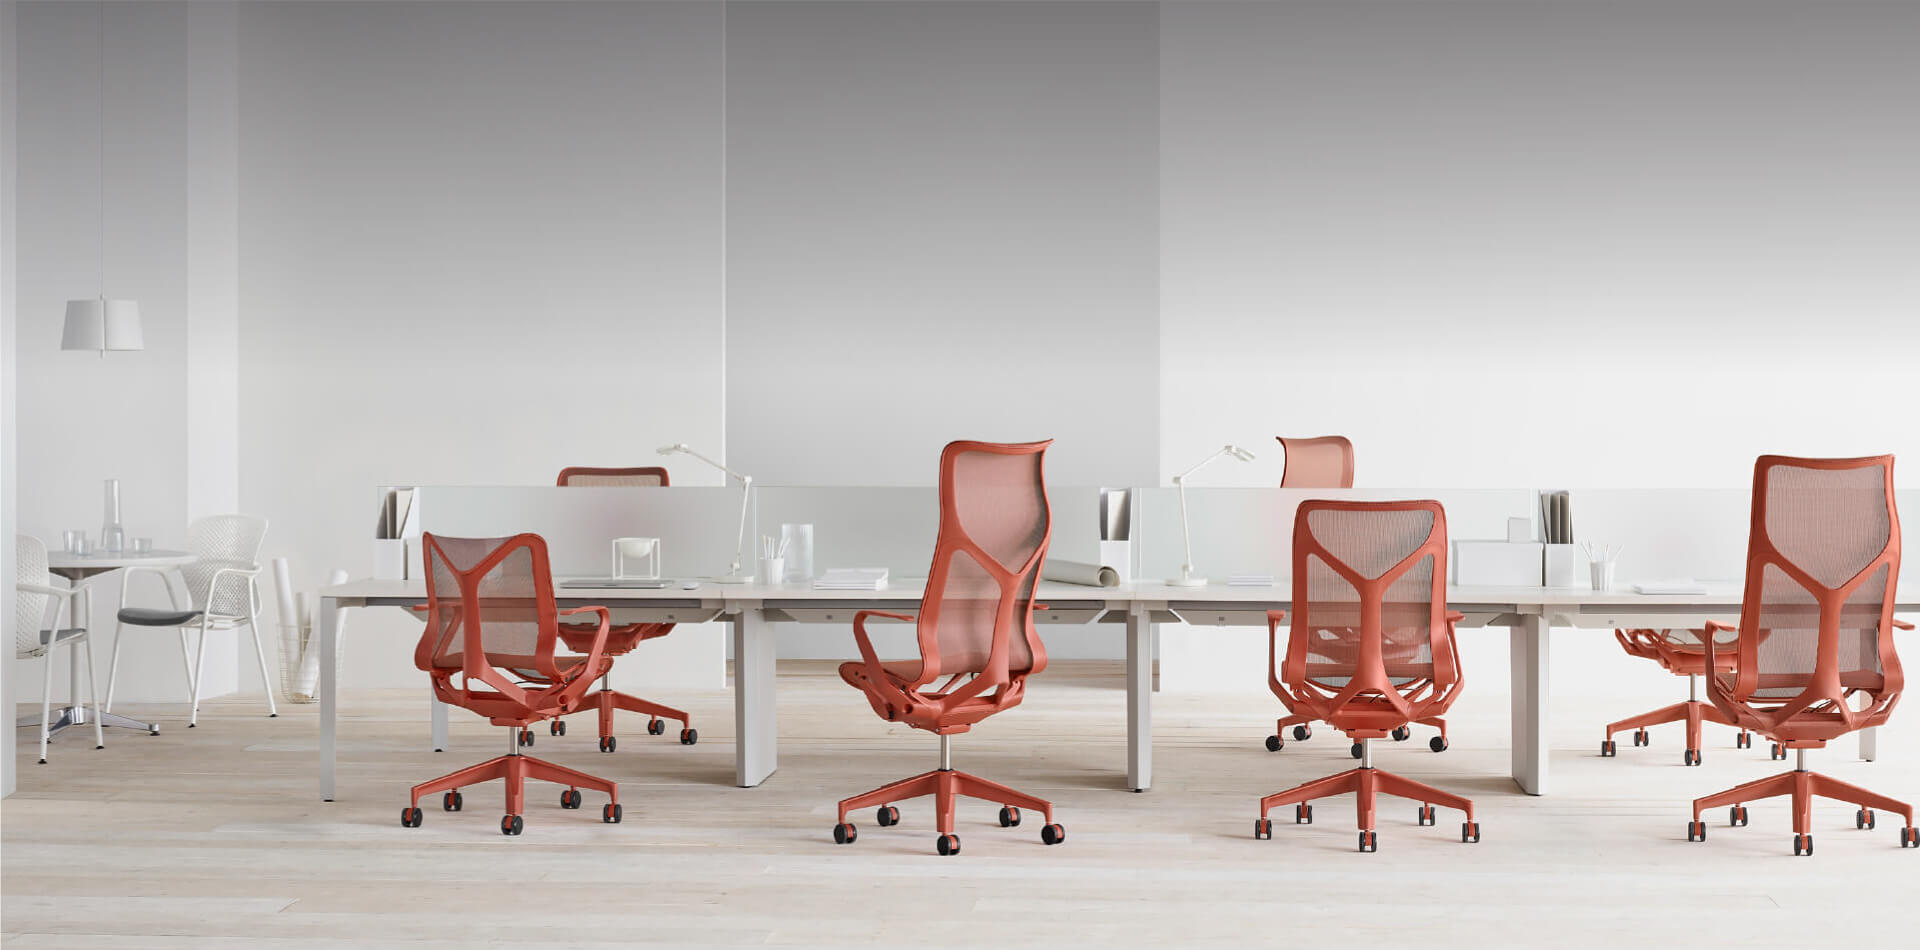 Modern meeting room with red chairs